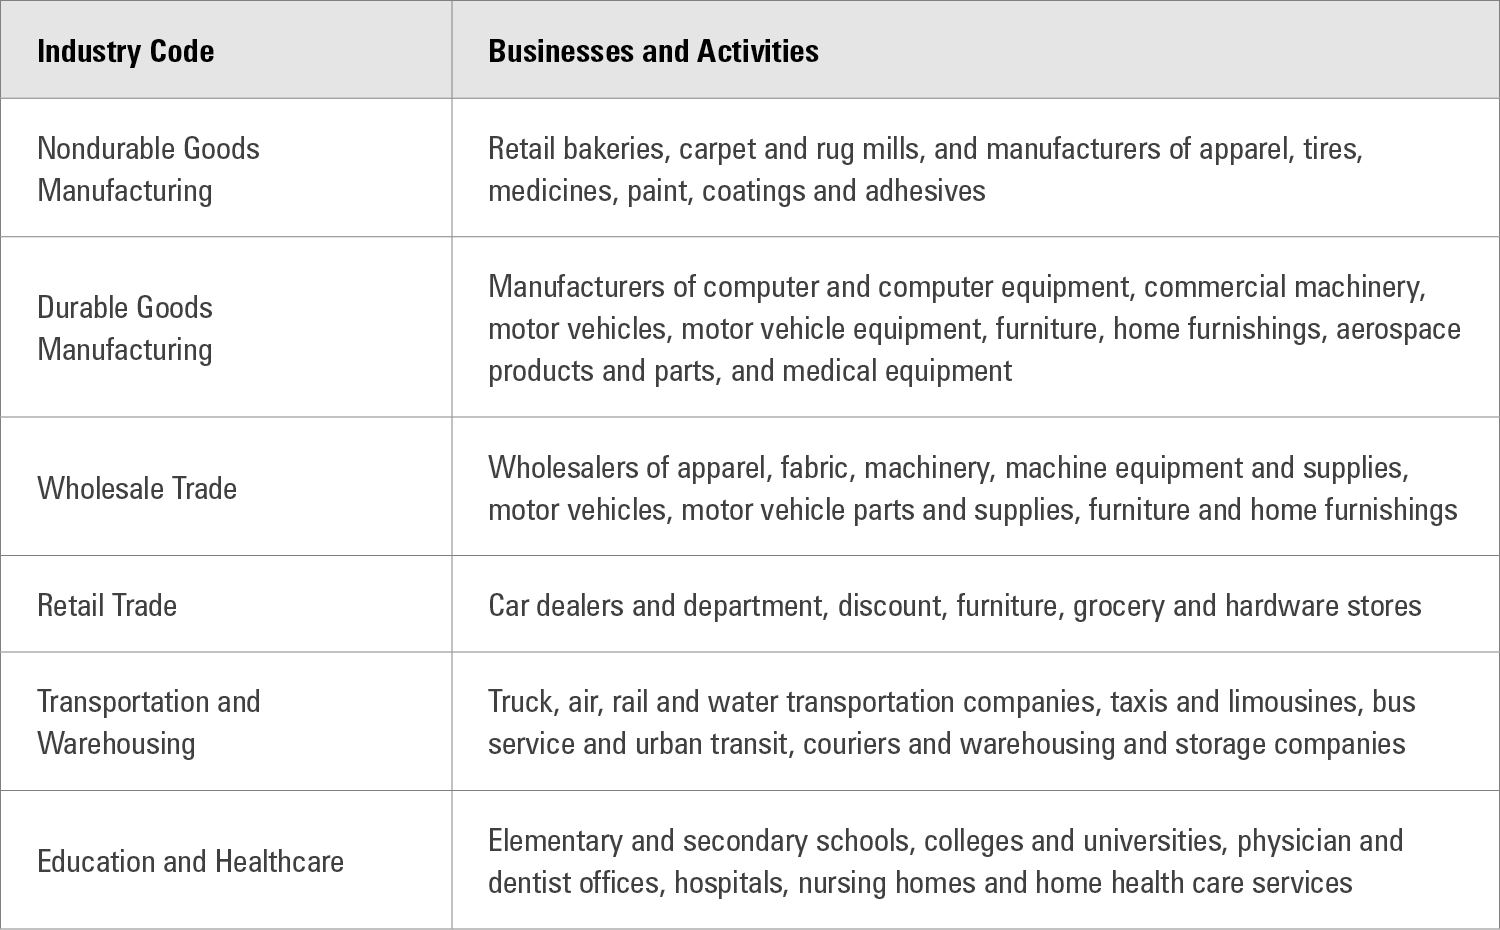 Graphic 1: Selected Businesses and Activities in Census Bureau Industry Codes - click to enlarge